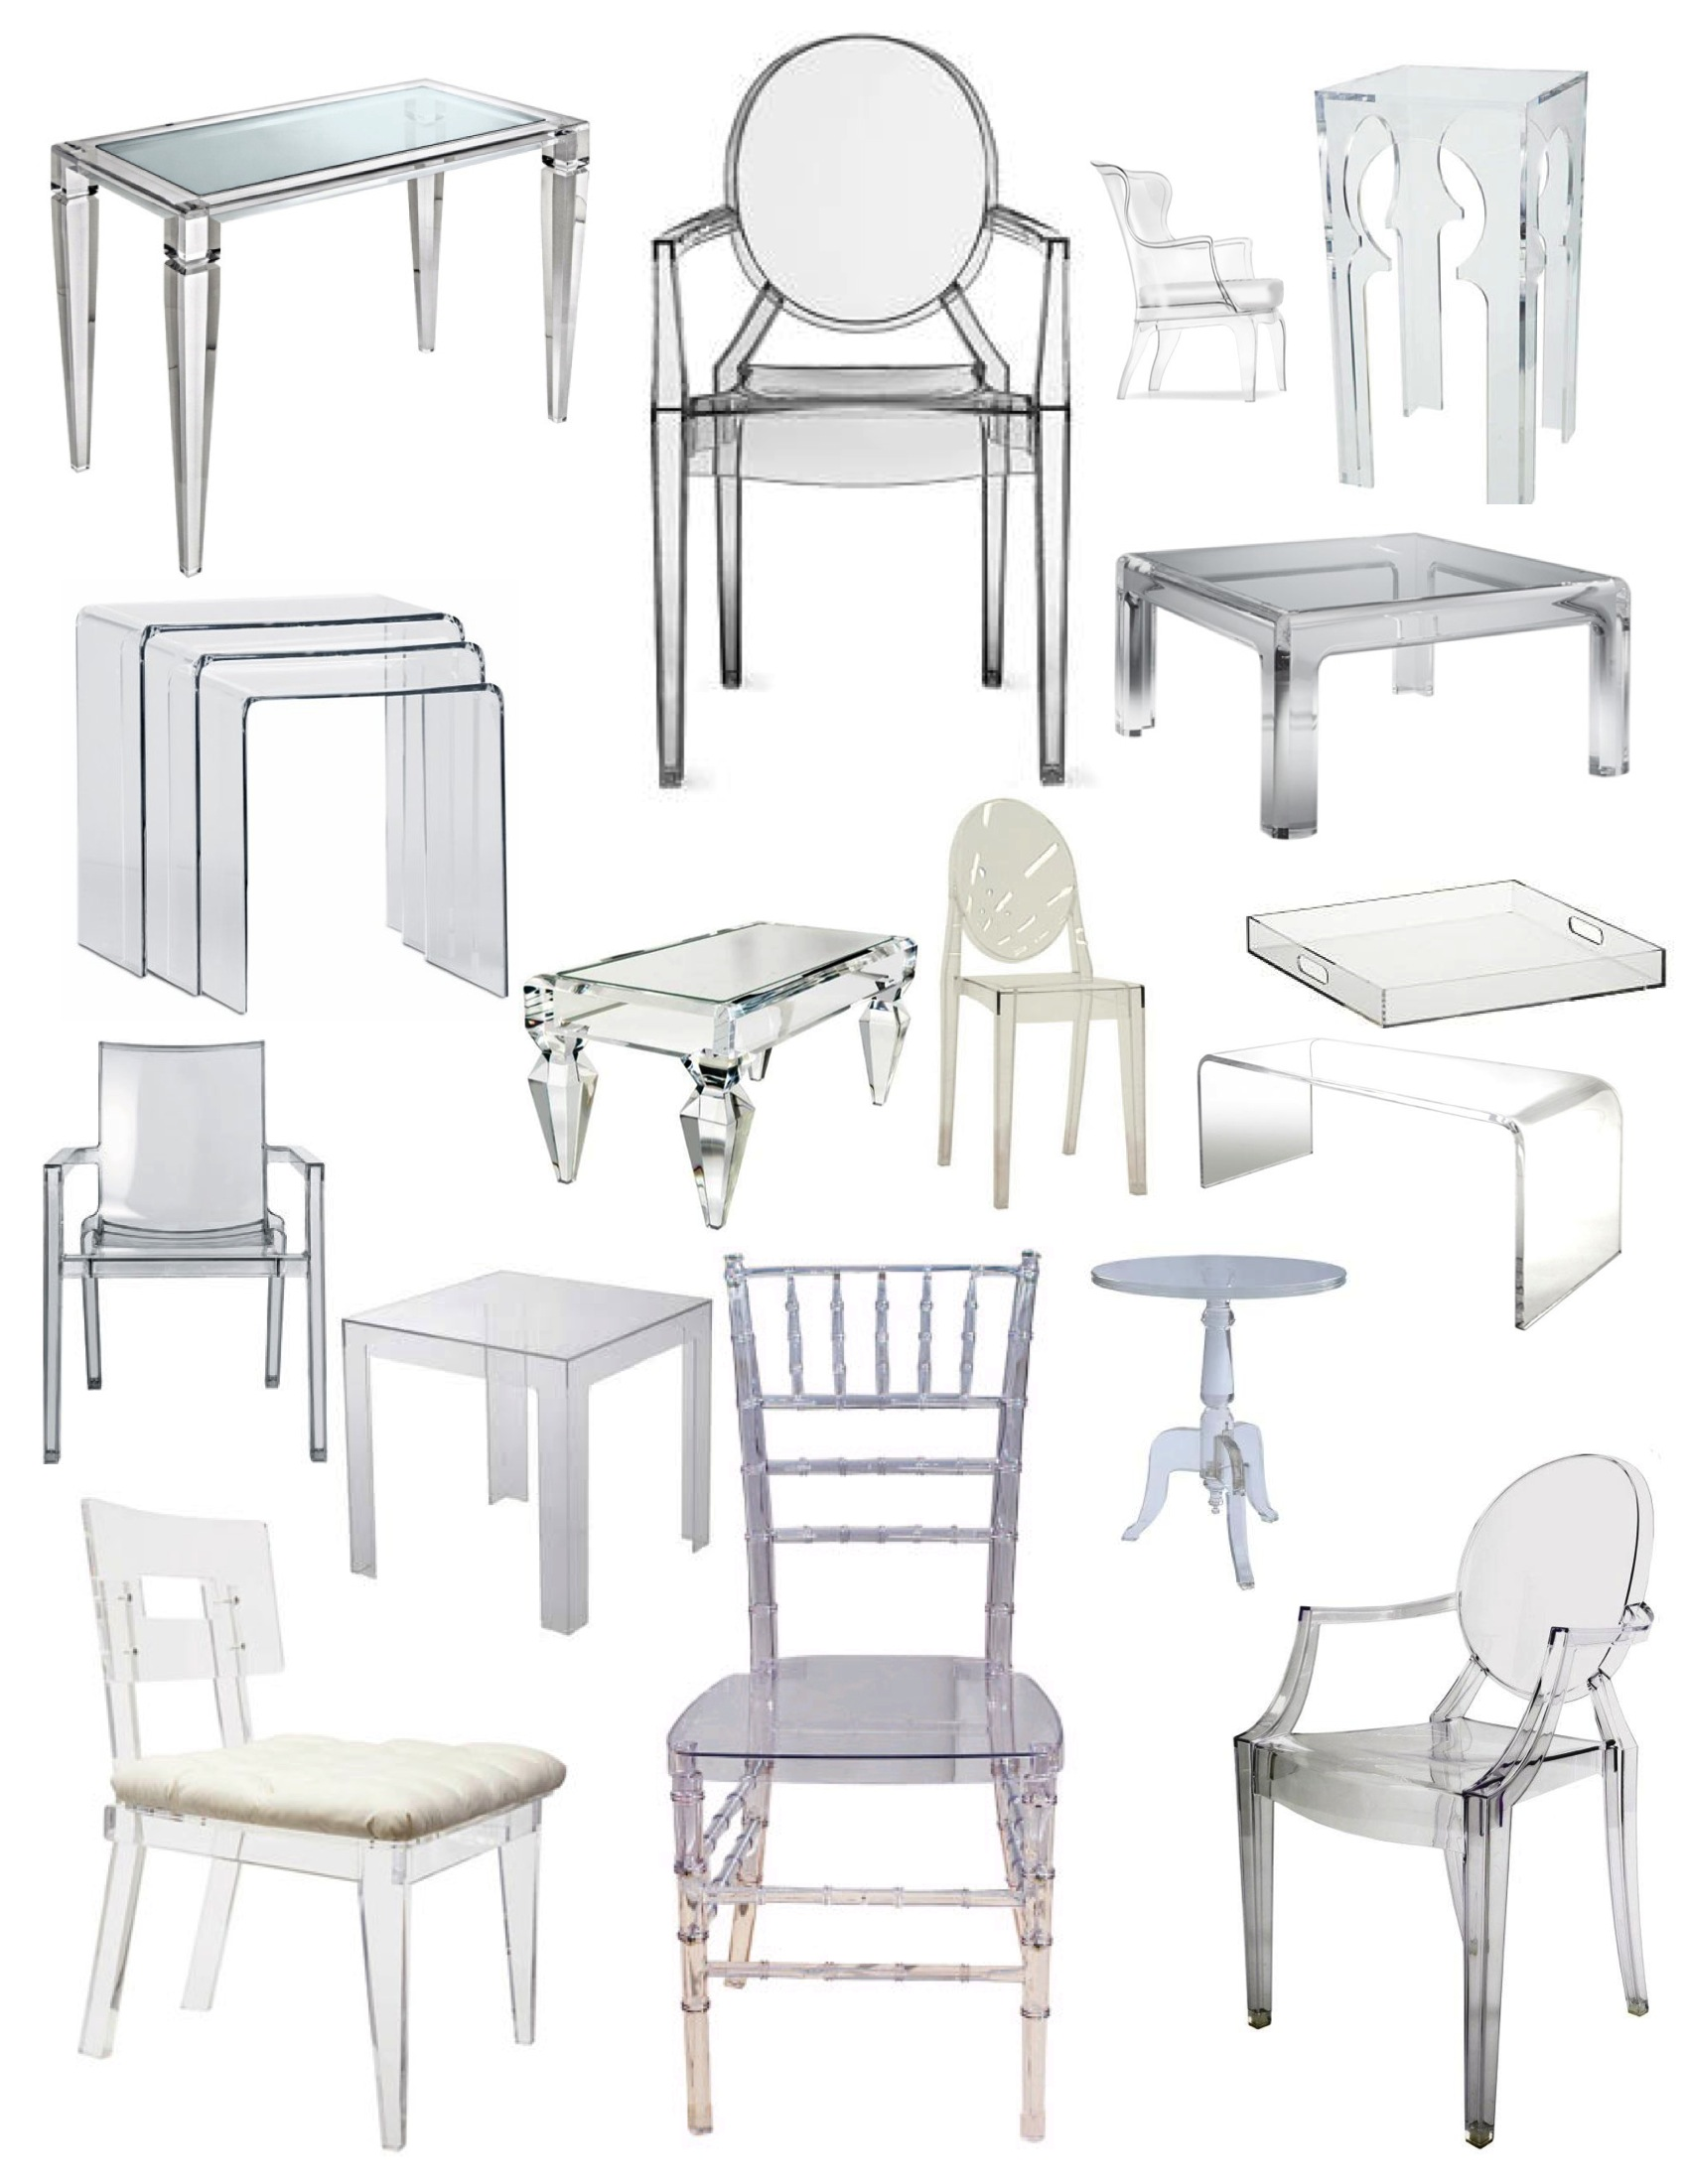 acrylic dining chair costco recliner chairs thinking clearly using mirror and lucite in decor modshop